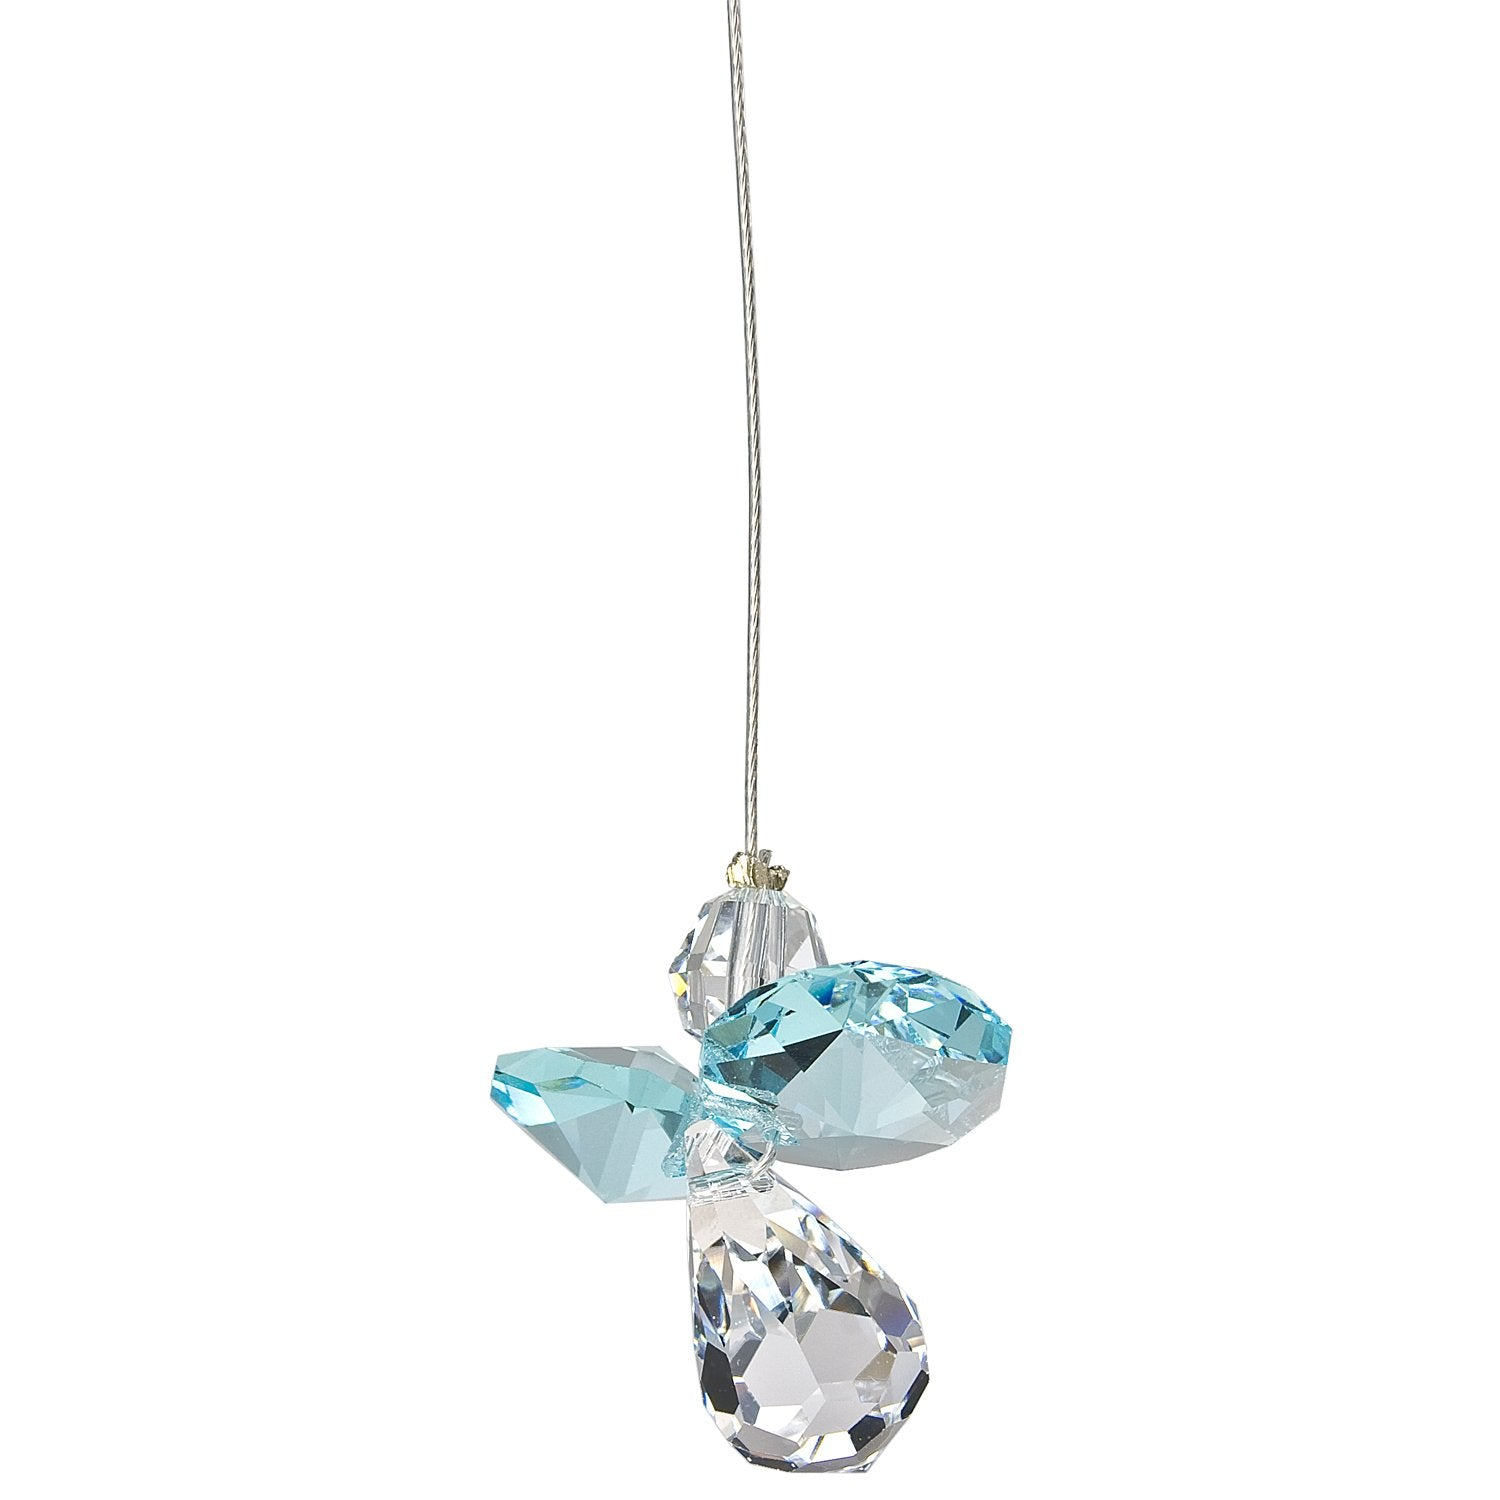 Crystal Guardian Angel Suncatcher - Aquamarine (March) alternate product image